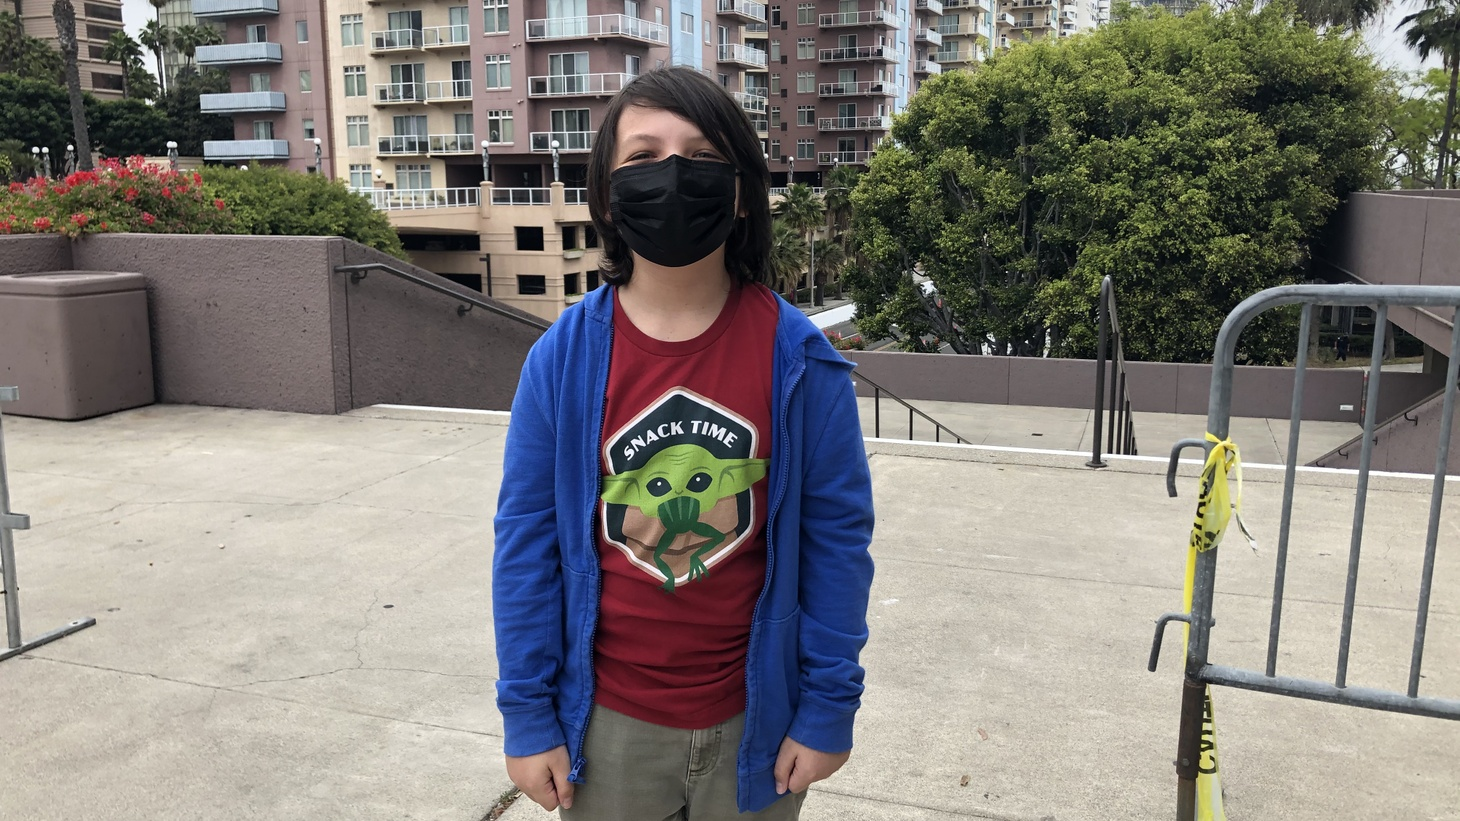 """12-year-old Brady Bond got vaccinated at the Long Beach Convention Center today. """"I'm excited to go to movie theaters again, start hanging out with friends, and do more activities like going to theme parks,"""" he said."""